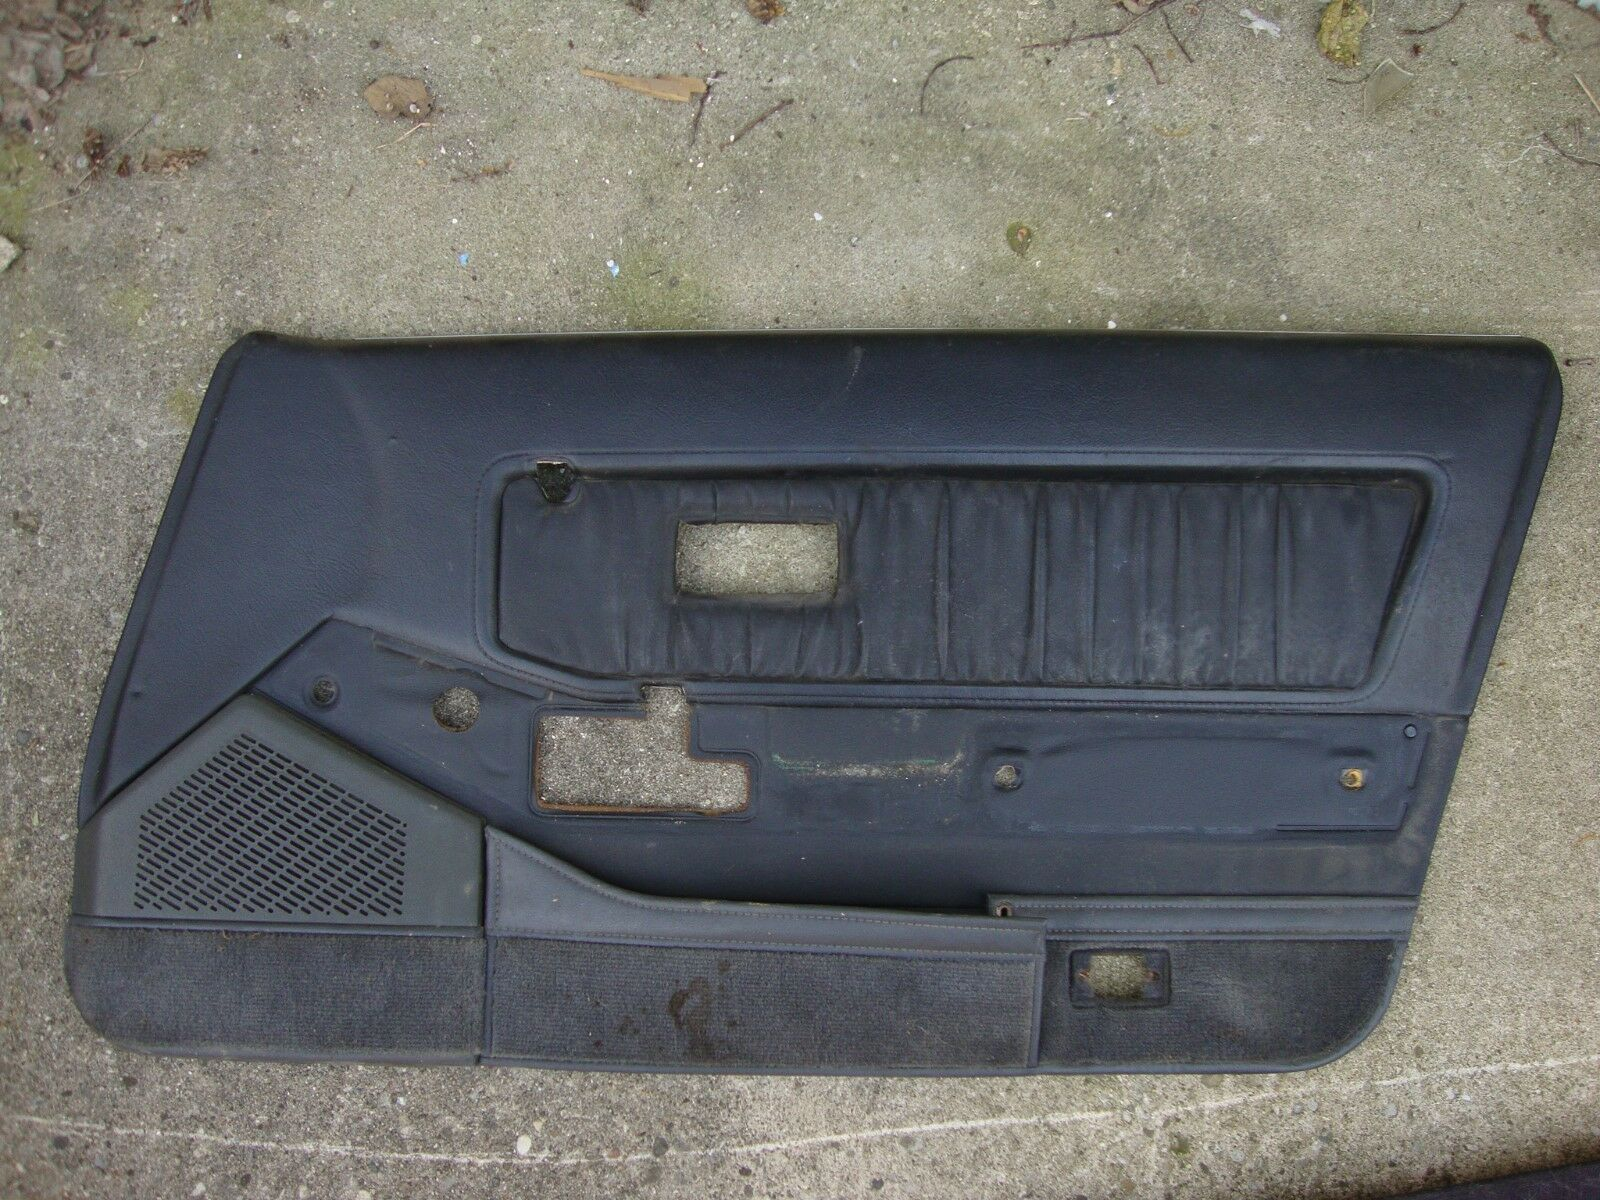 used nissan 300zx interior door panels & parts for